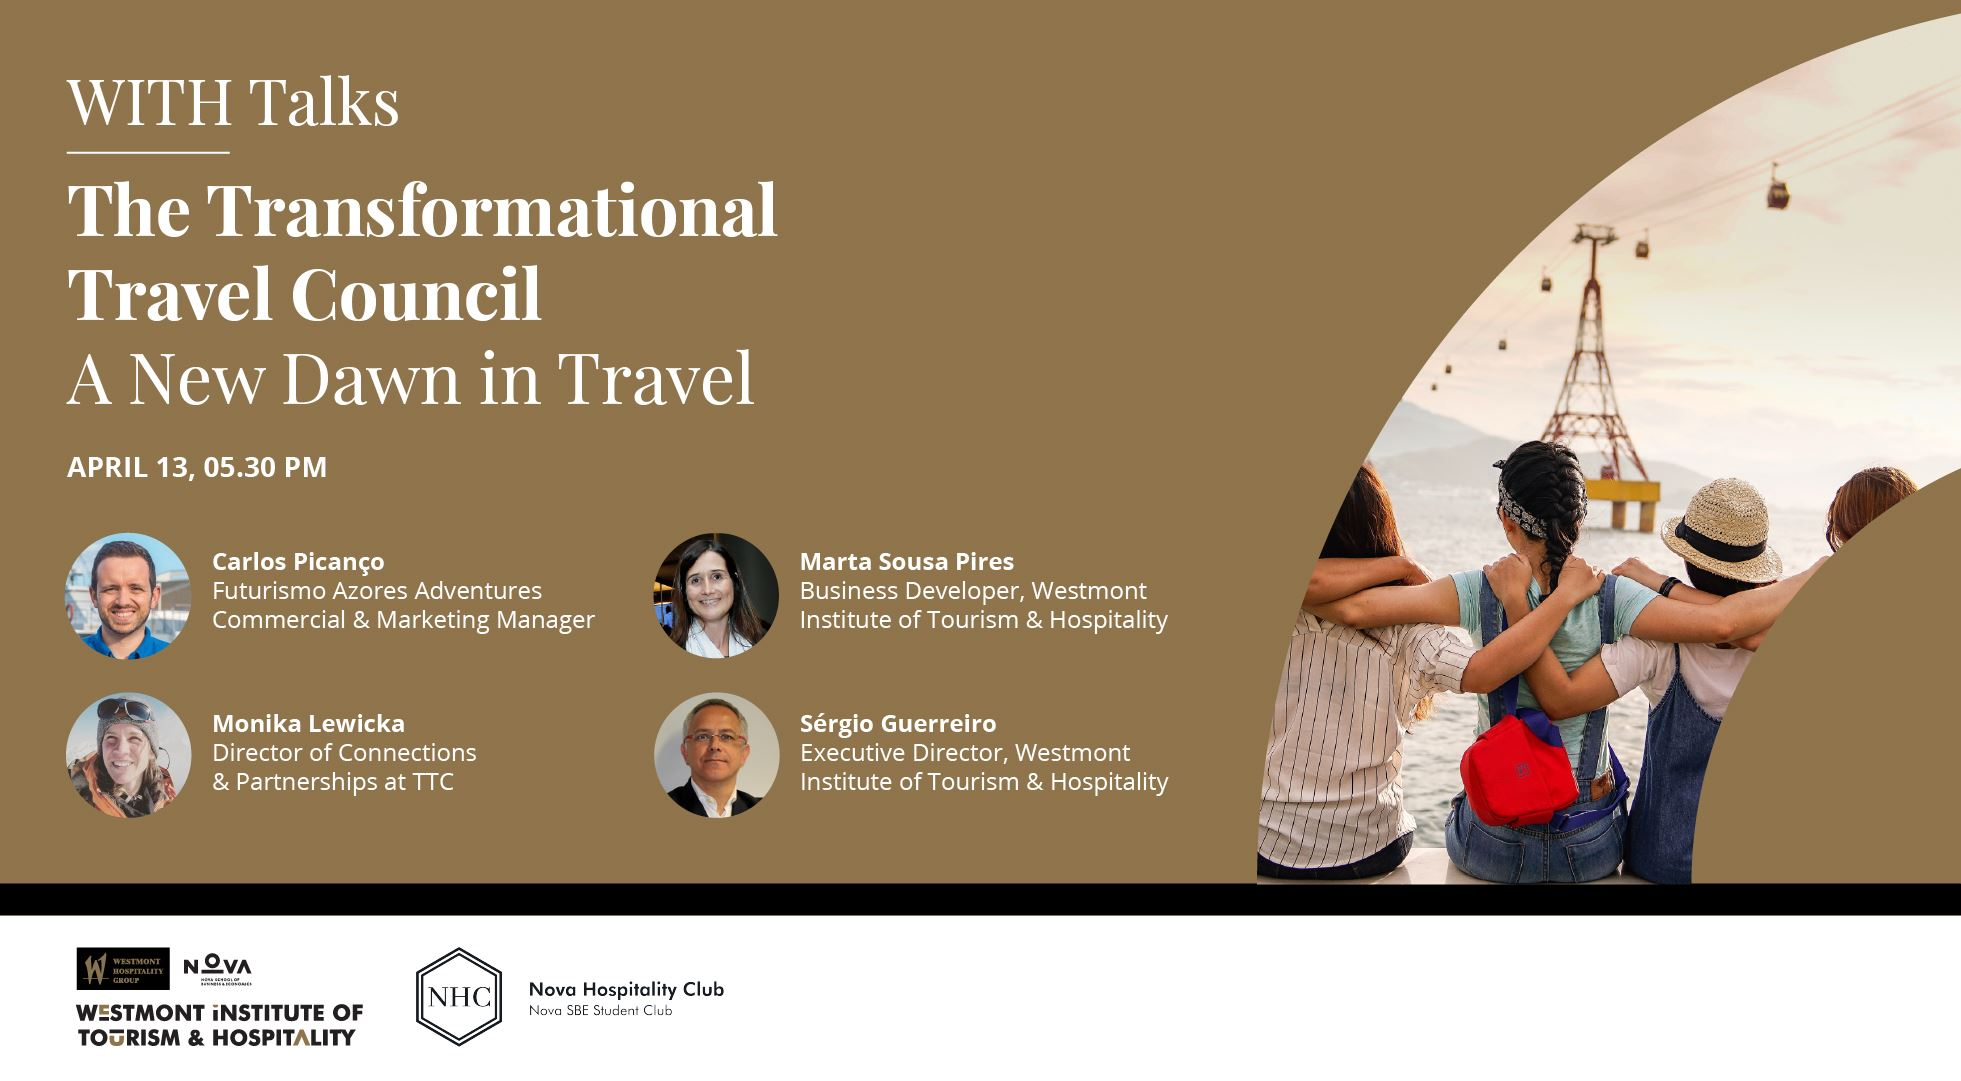 Transformational Travel Council - A new dawn in travel